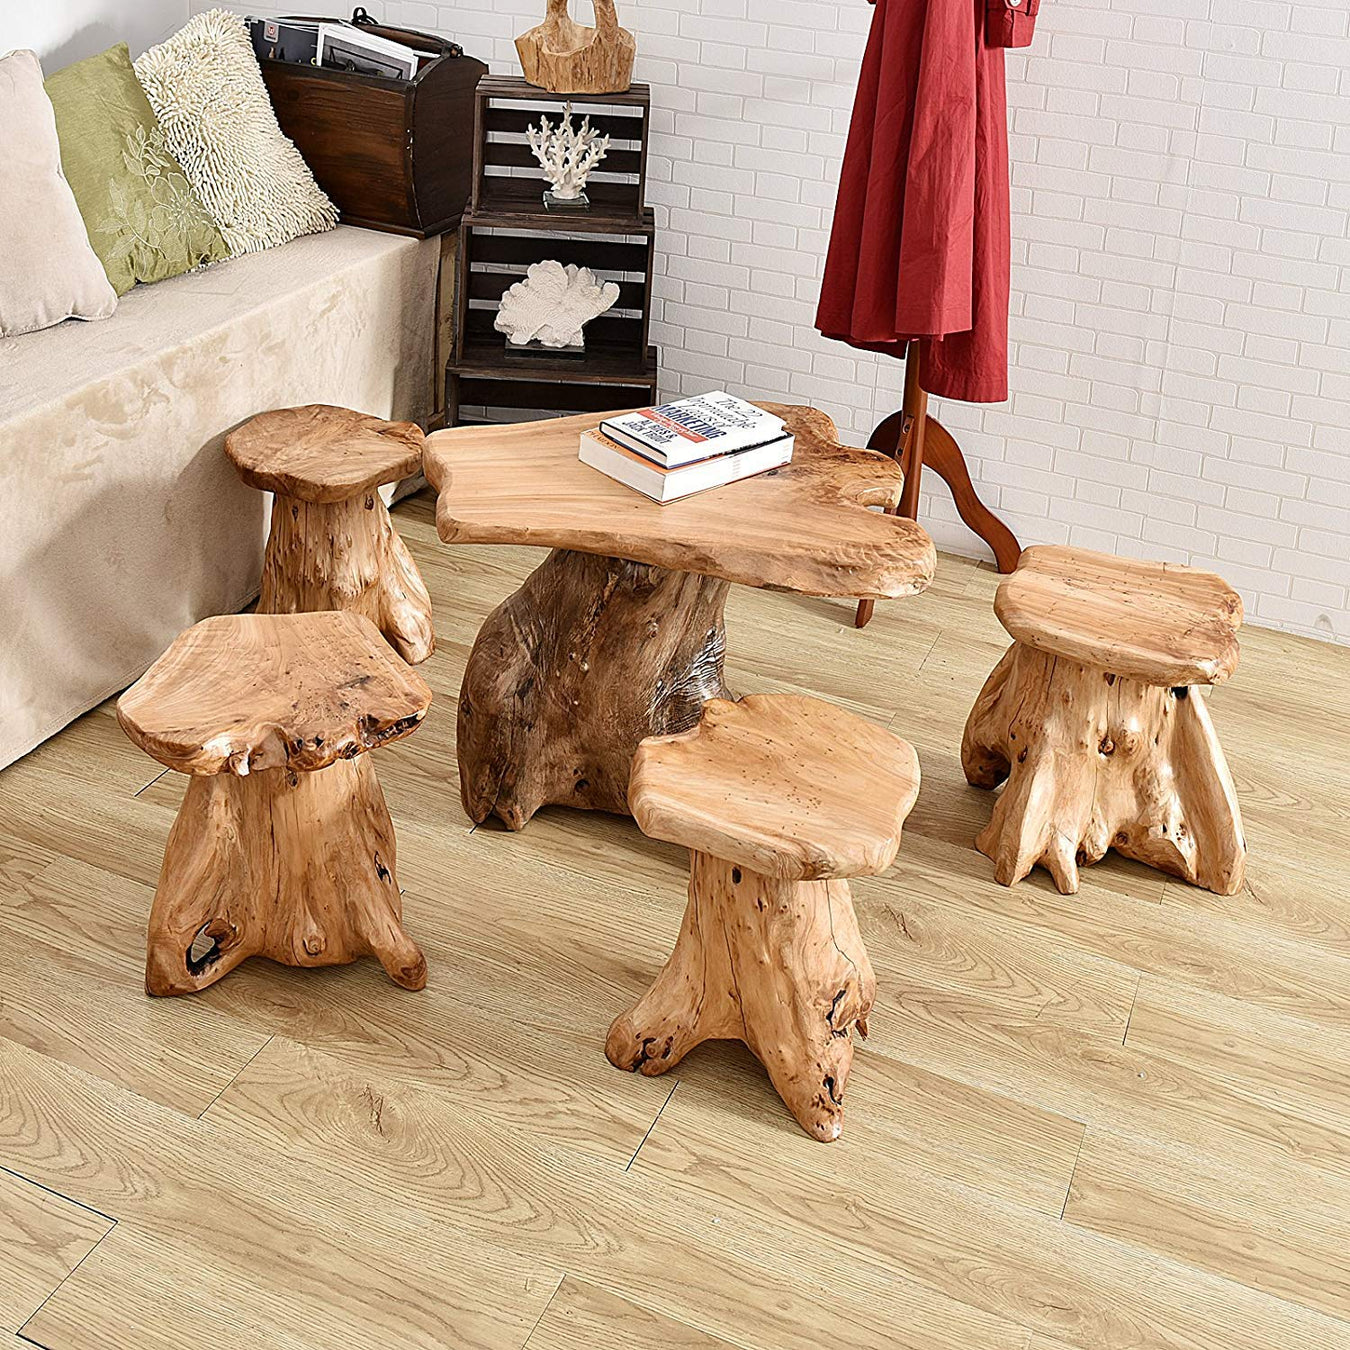 Tree stump side table| Wellandstore